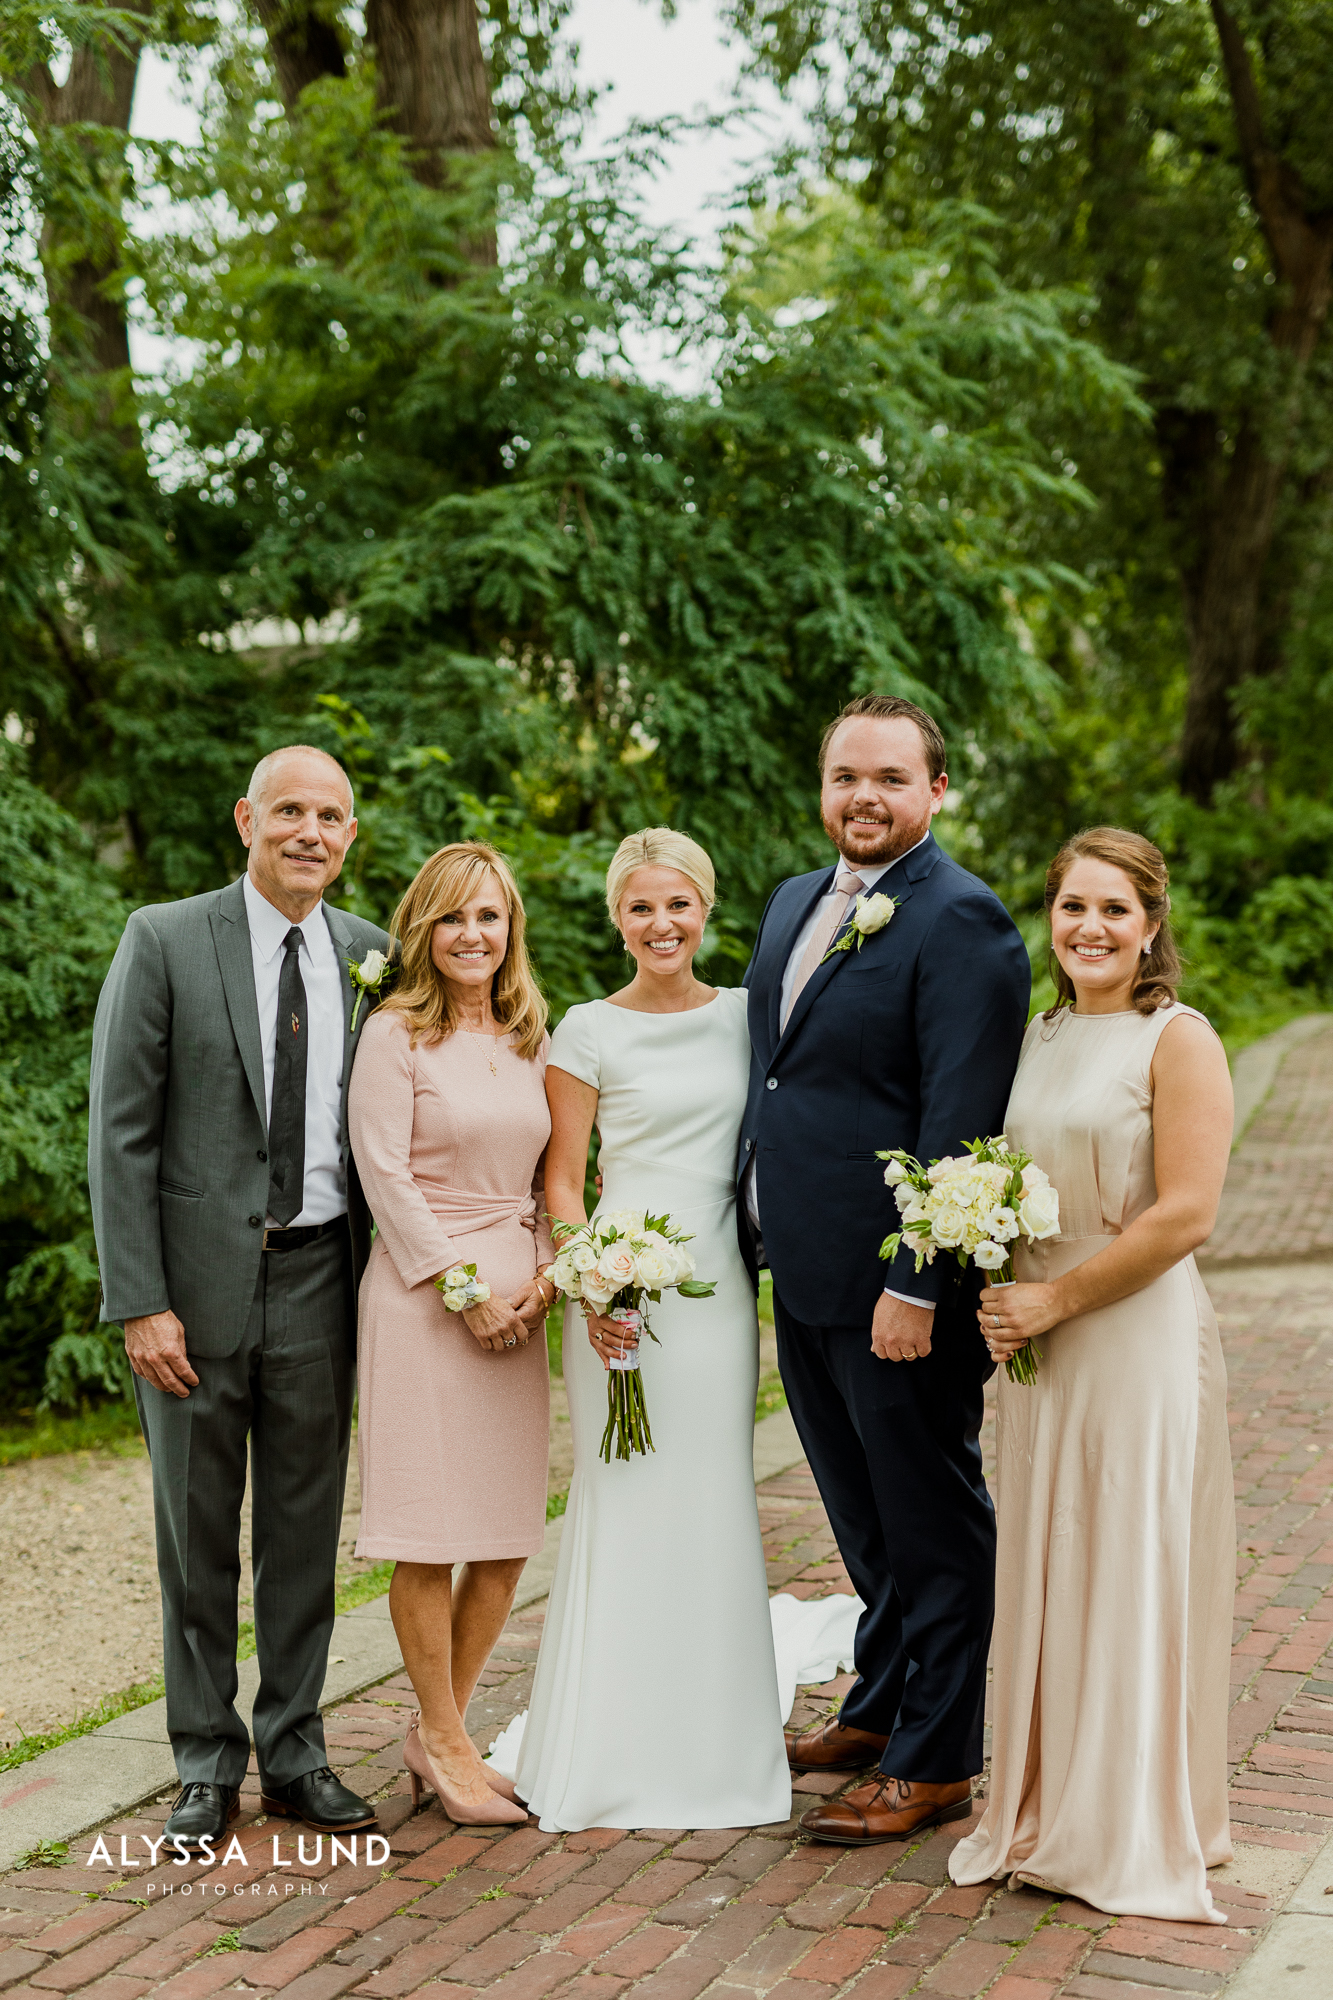 Minneapolis Wedding Photography at Aster Cafe-28.jpg